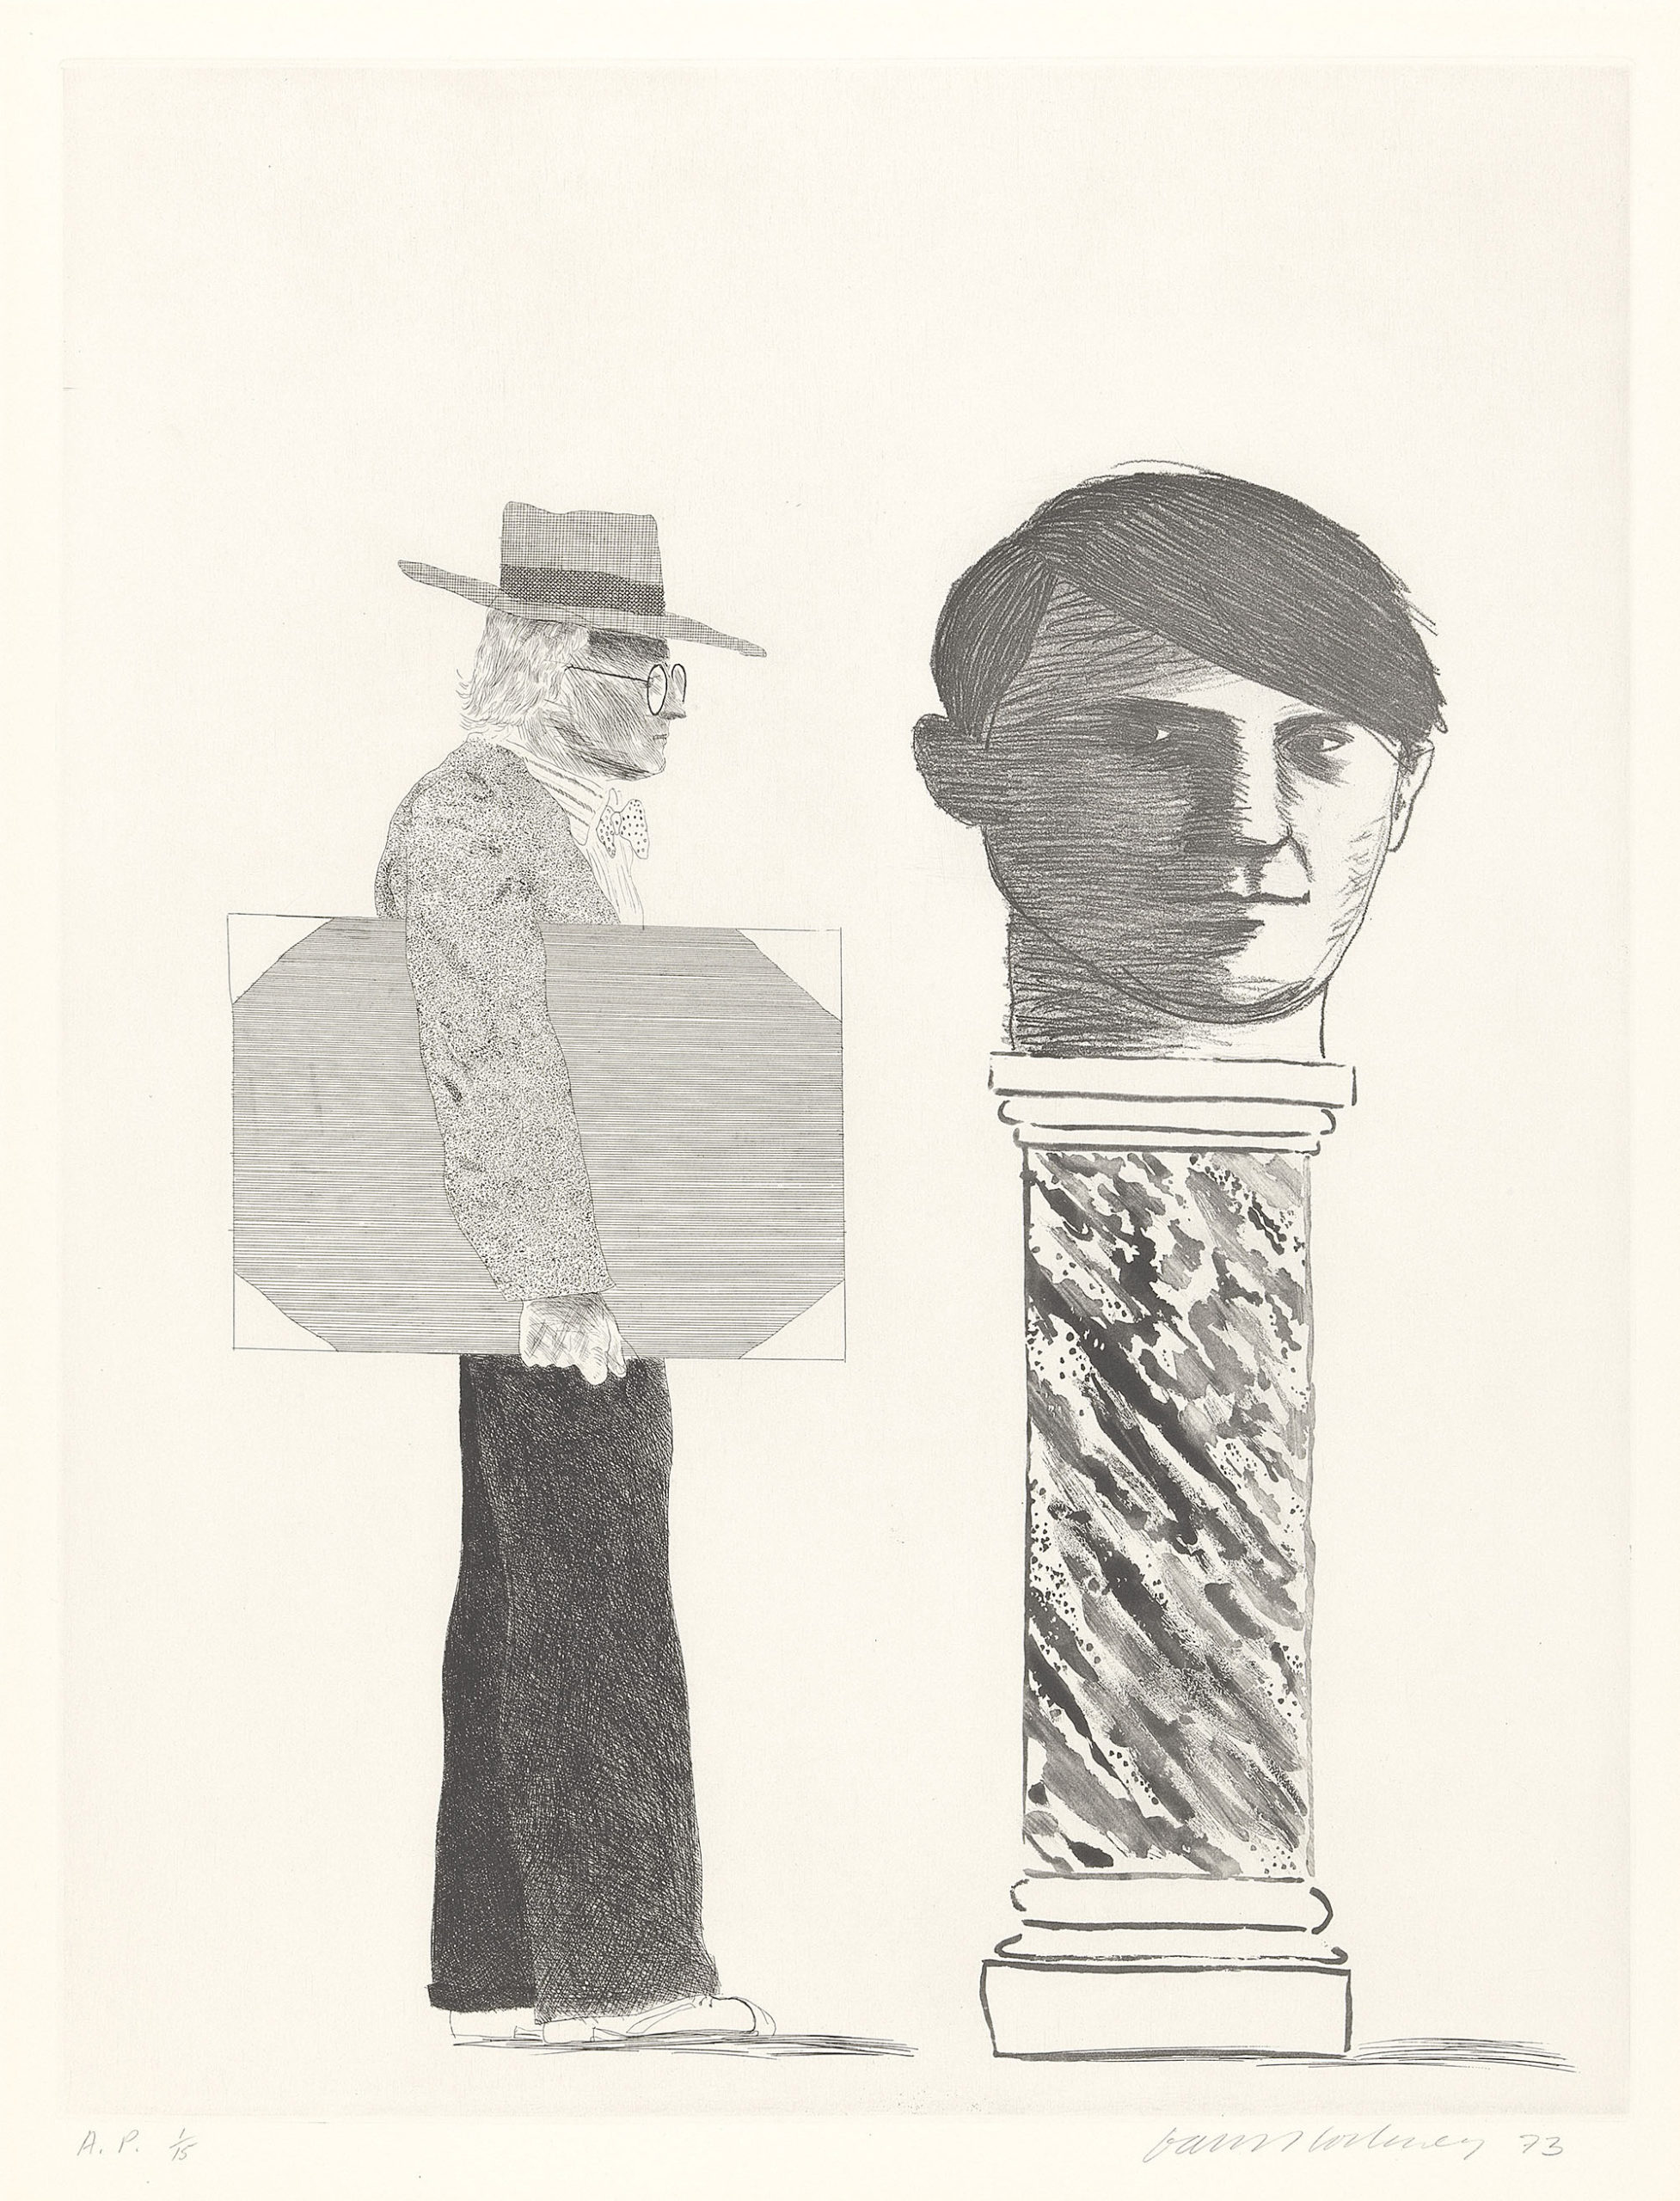 David Hockney - The Student Homage to Picasso, 1973